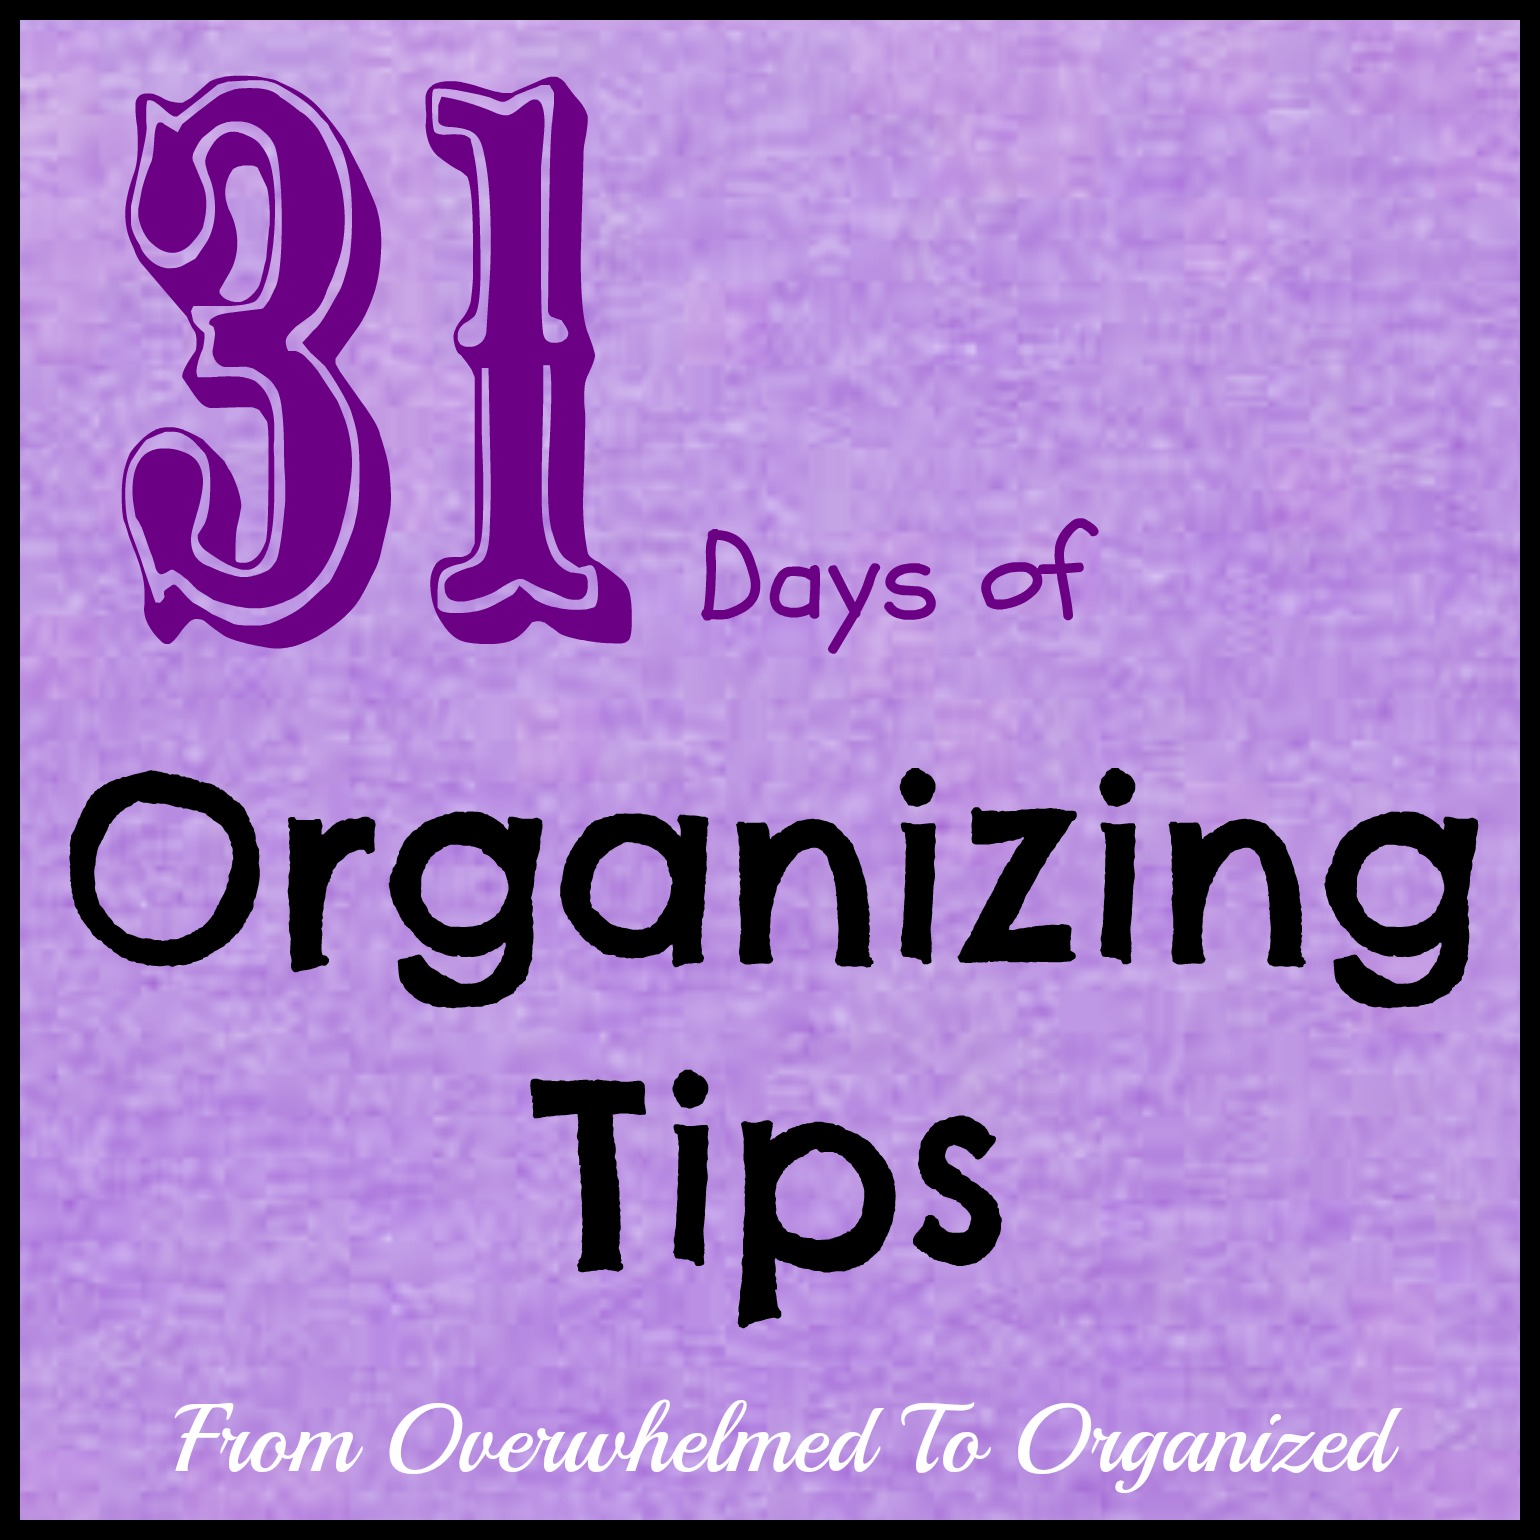 31 Days Of Organizing TipsFrom Overwhelmed To Organized